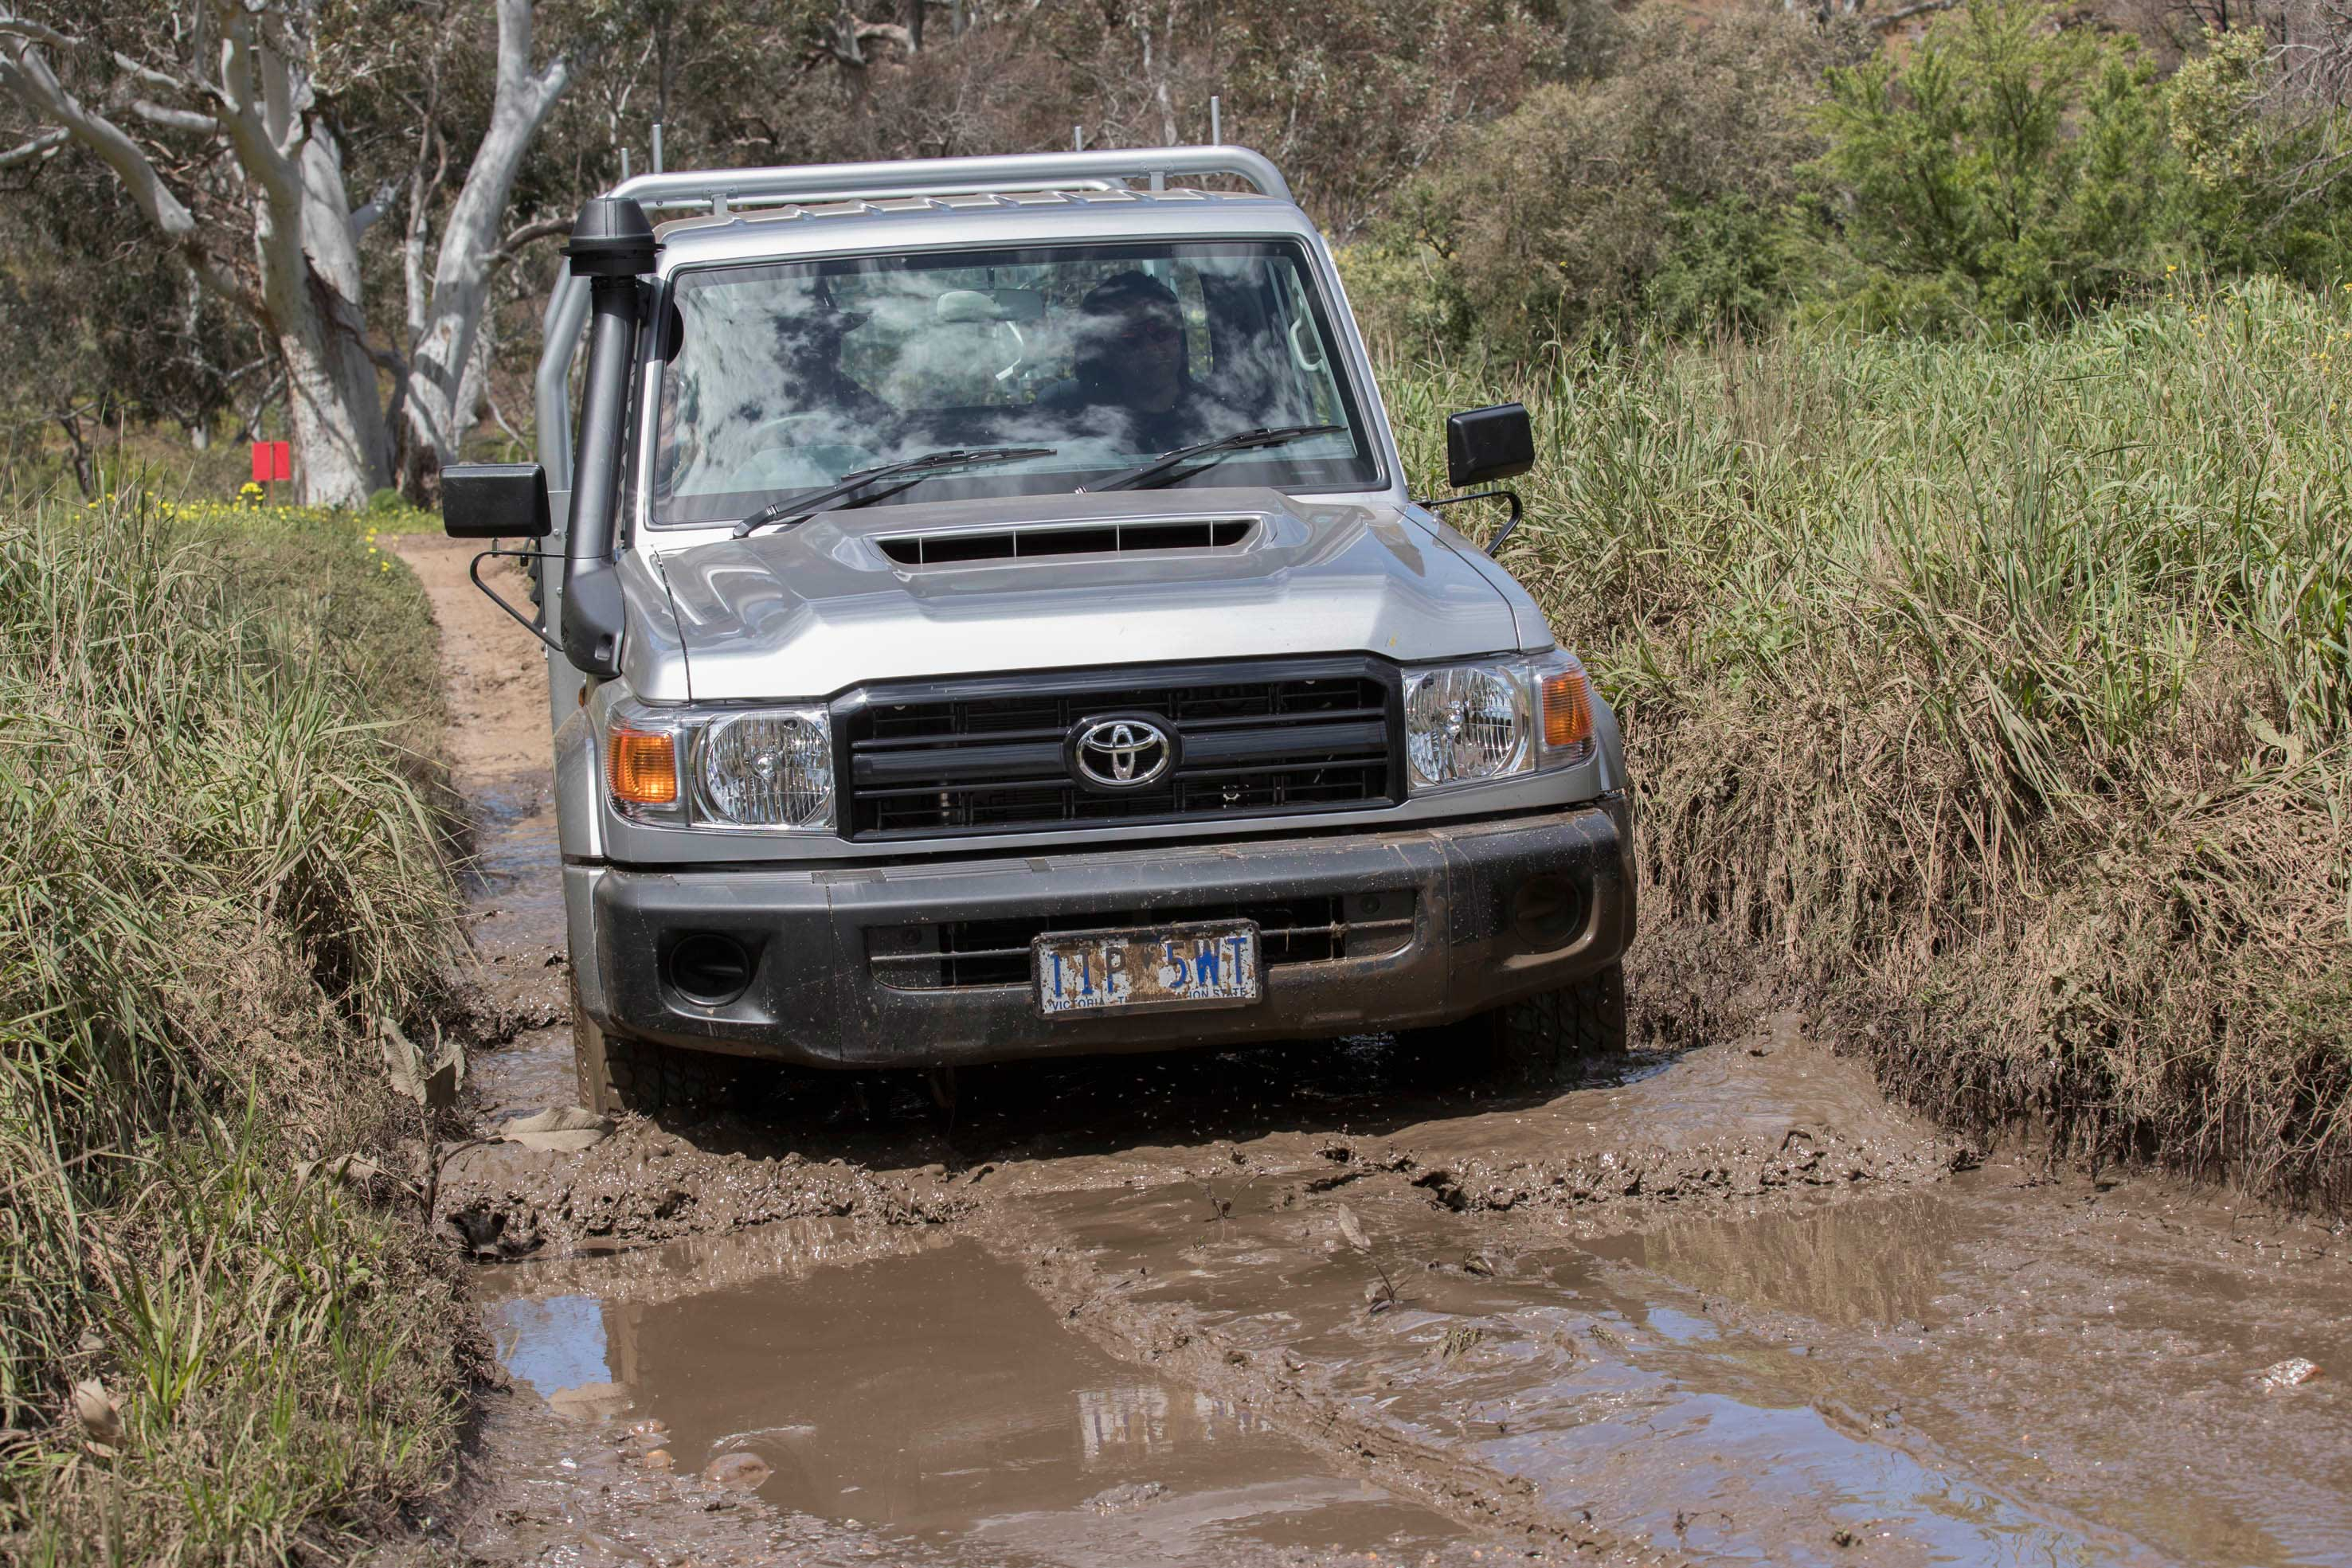 Toyota Landcruiser 70 series wading through mud